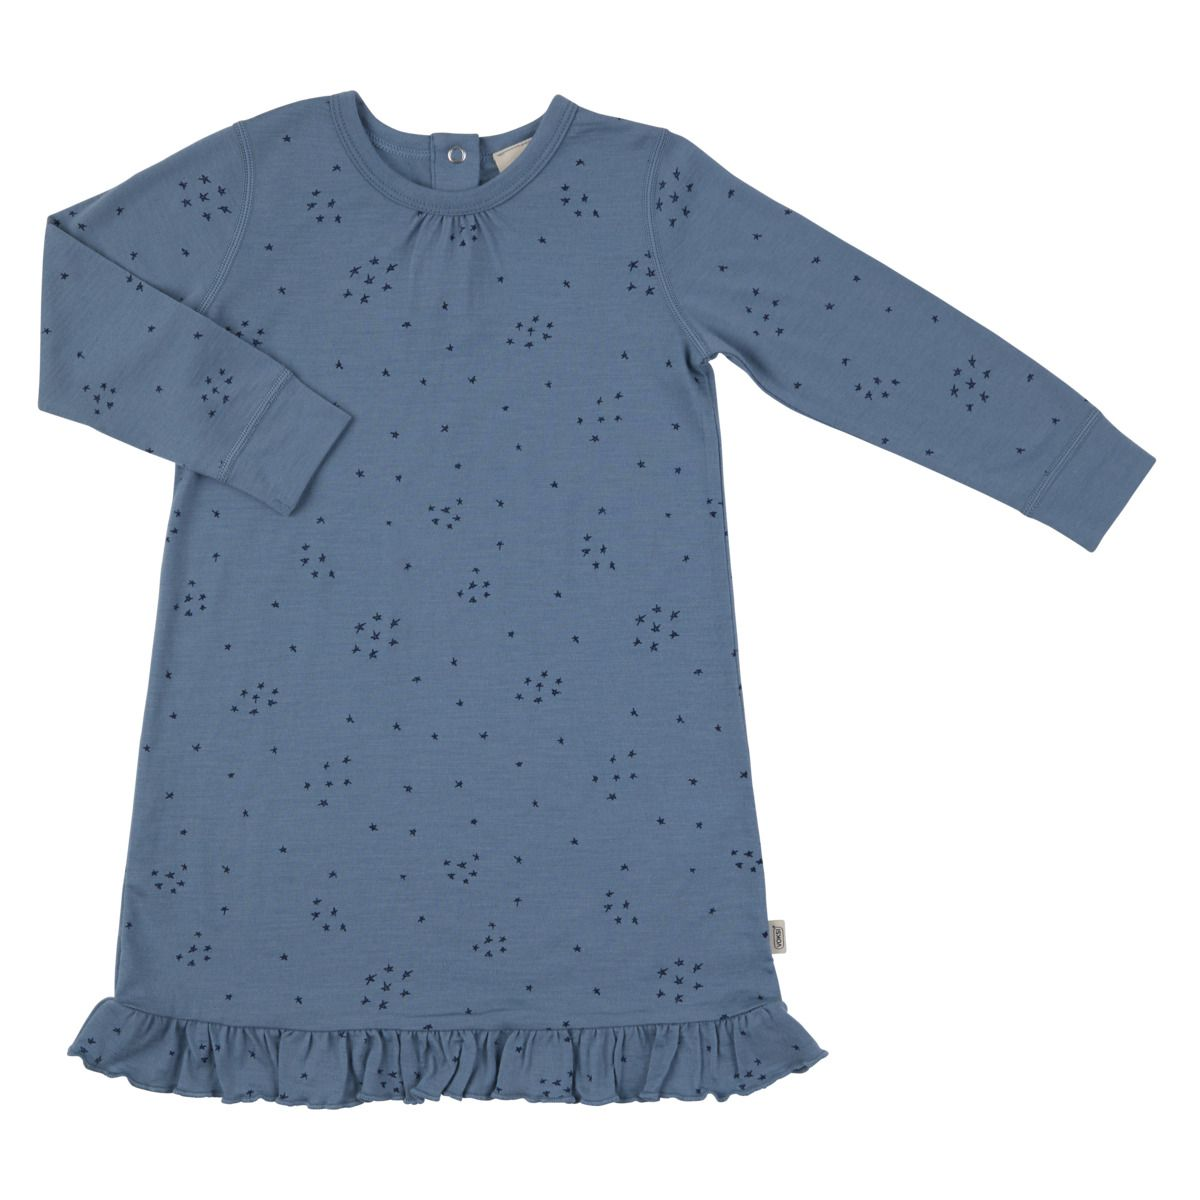 Фото: Платье Voksi Blue star